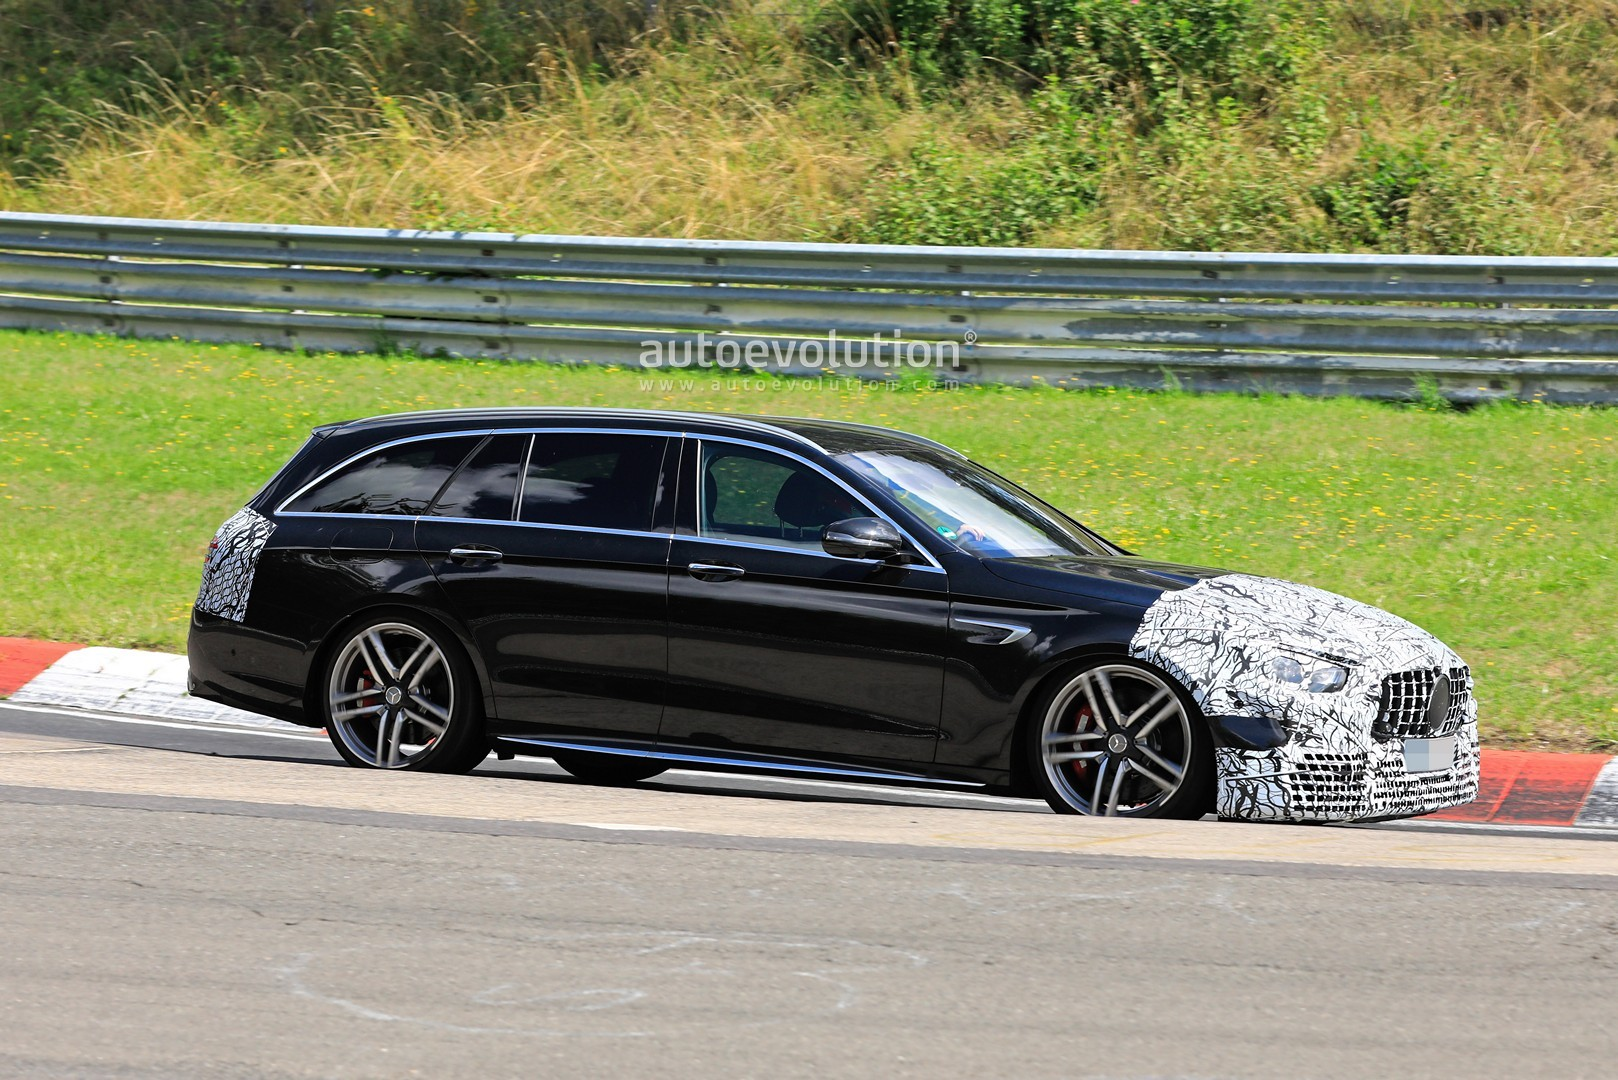 2021 mercedes-amg e63 wagon shows epic facelift look at